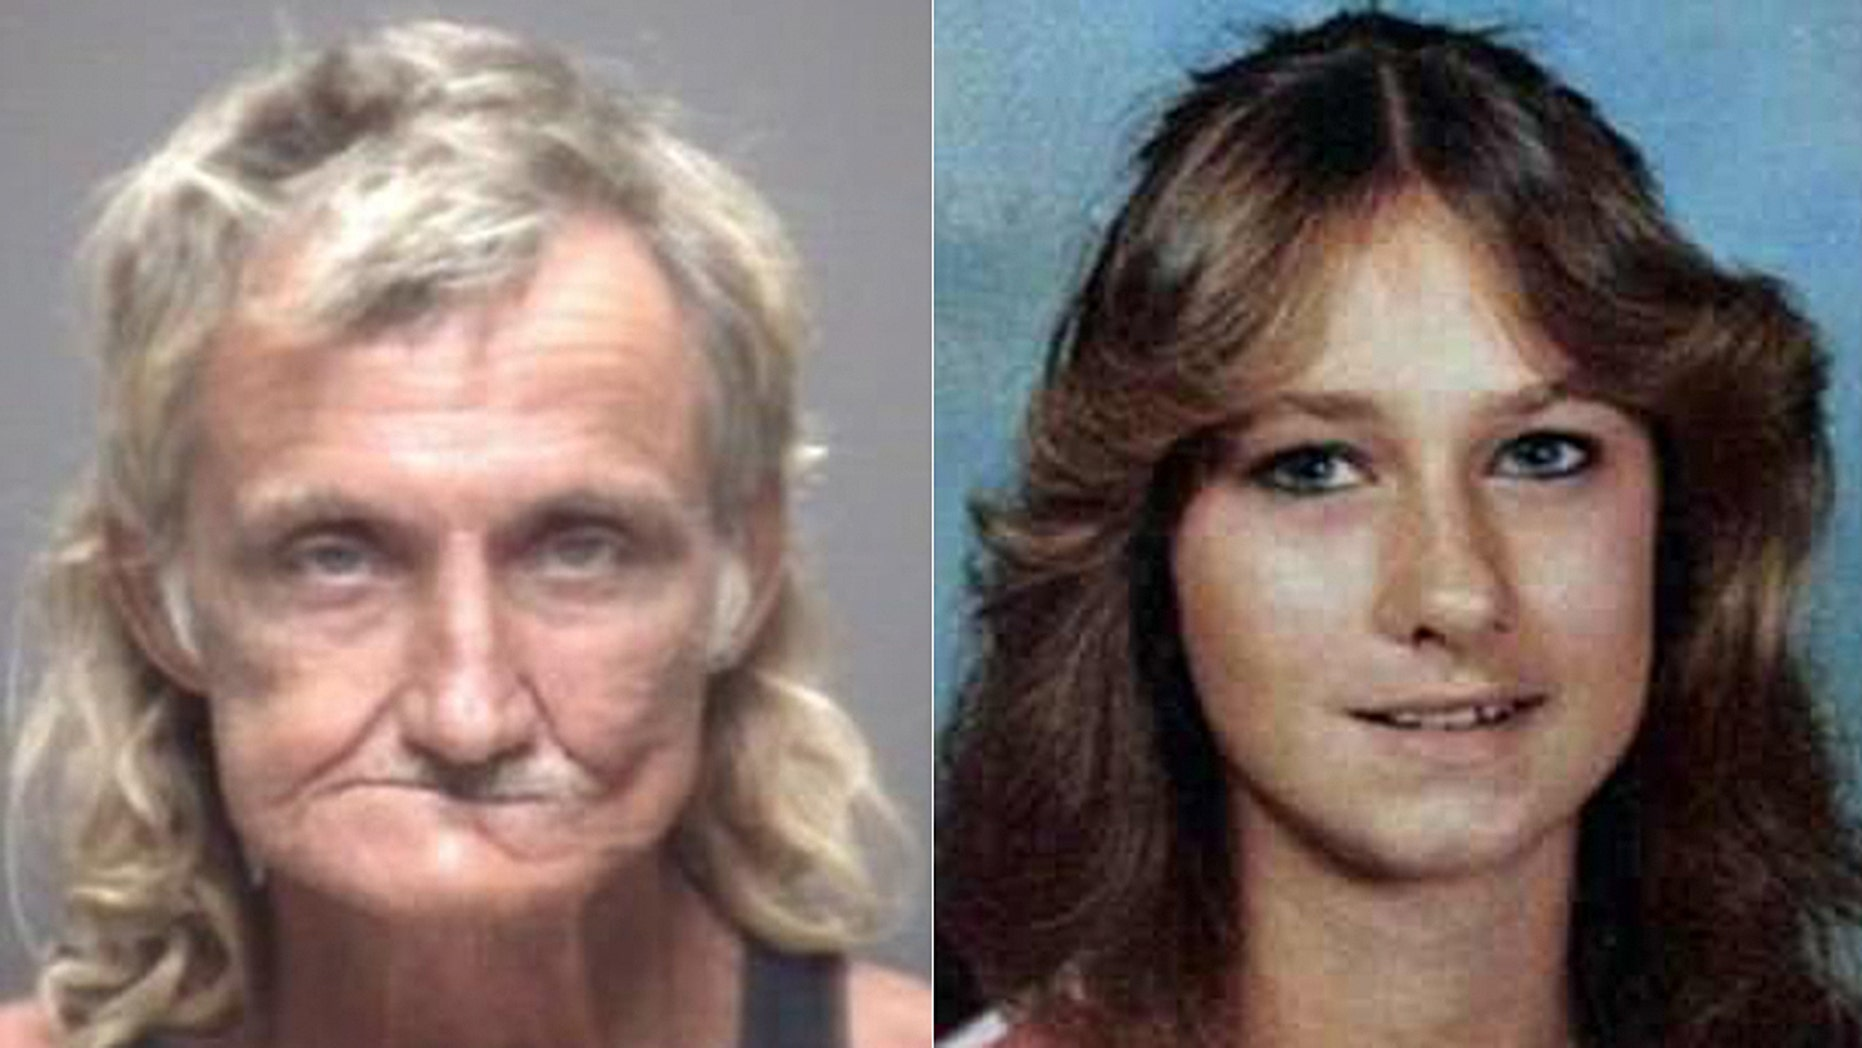 Texas man may have solved daughter's 1984 murder | Fox News